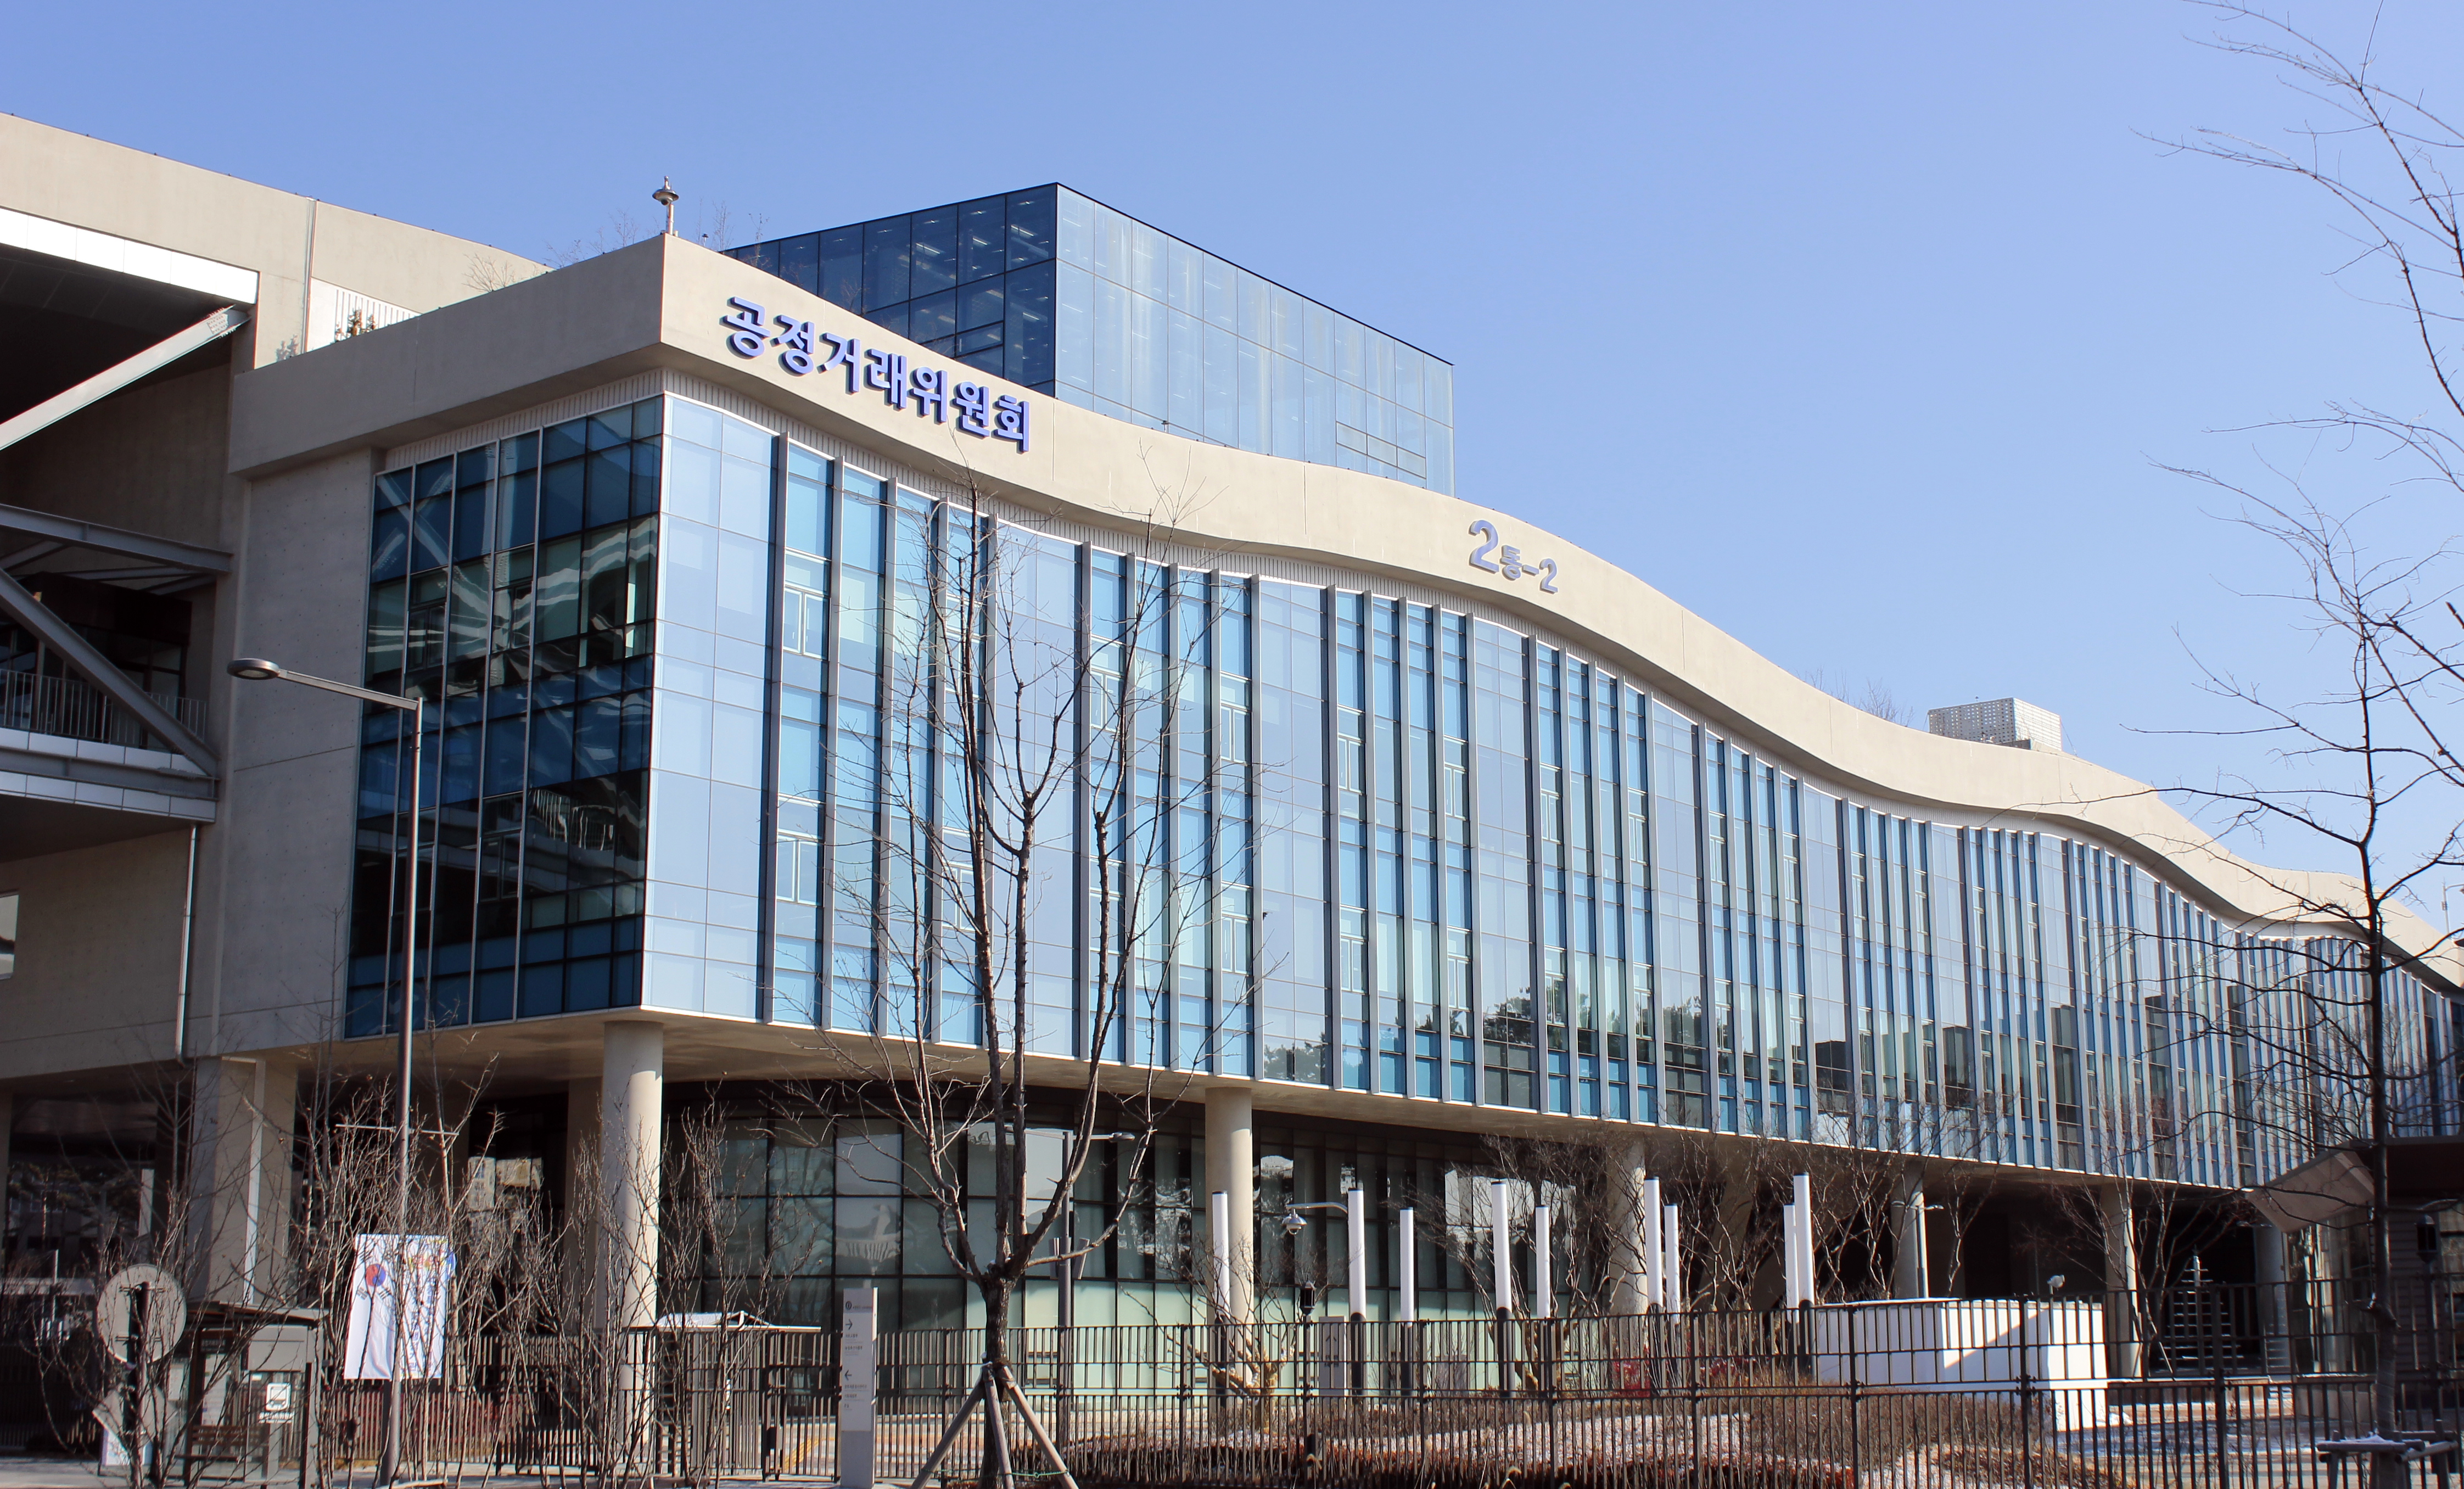 Antitrust Watchdog Slaps 70 2 Bln Won Fine On Four Builders For Bid Rigging Be Korea Savvy